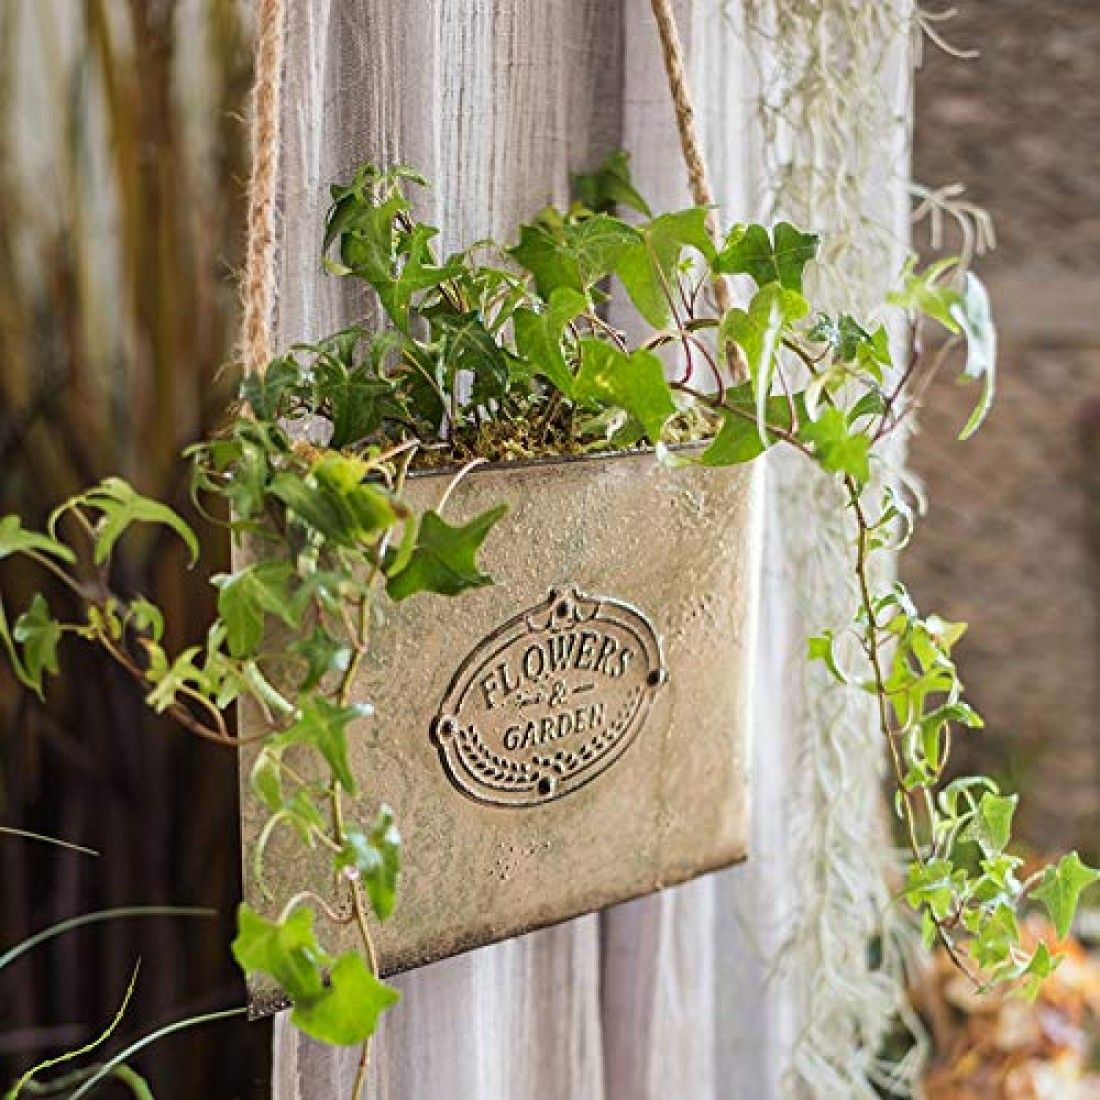 French Country Rustic Chic Letter Metal Wall Hanging Planters Iron Holder Hanging Planters Flower Pot Art Hanging Flower Baskets